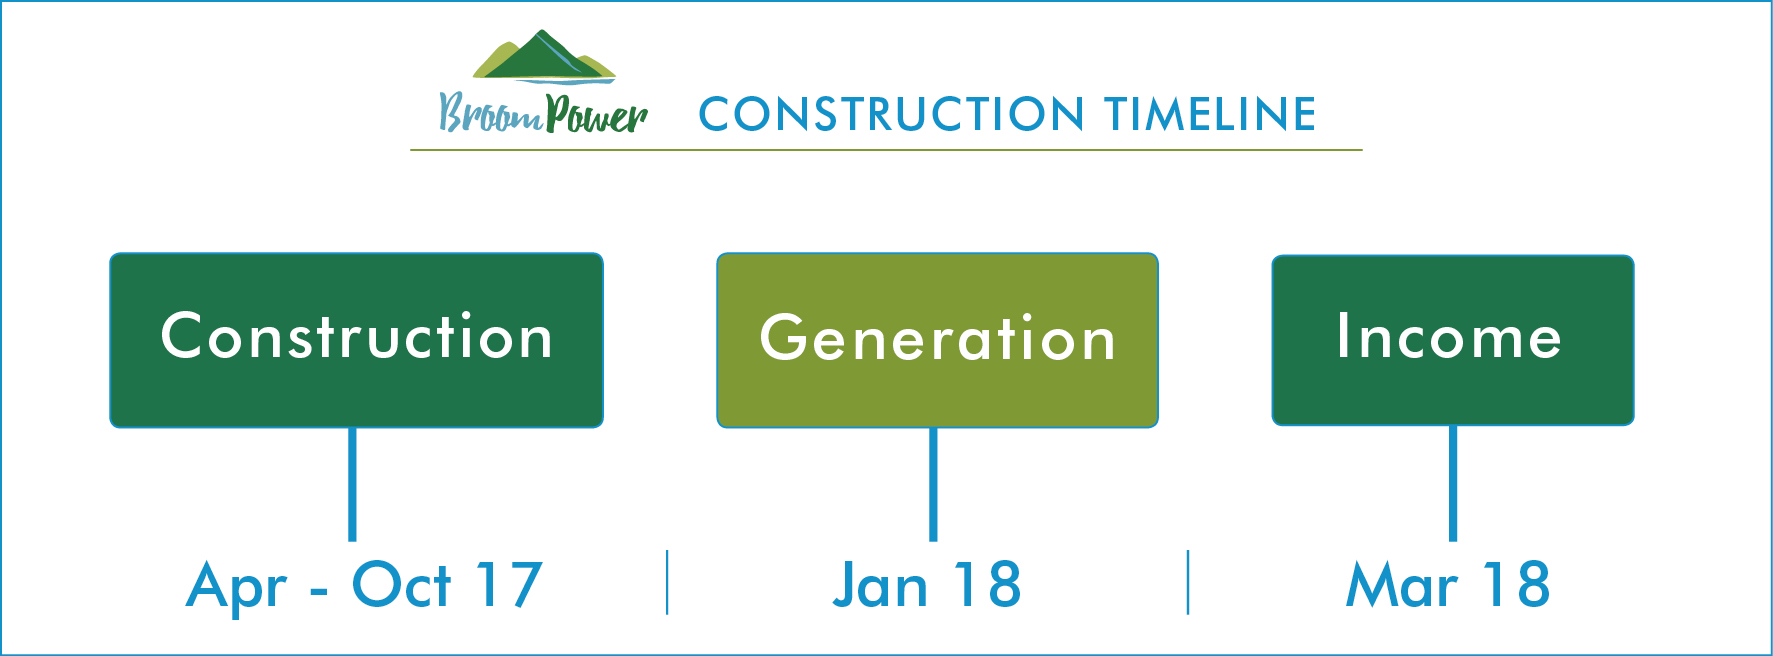 BroomPower construction timeline our hydro